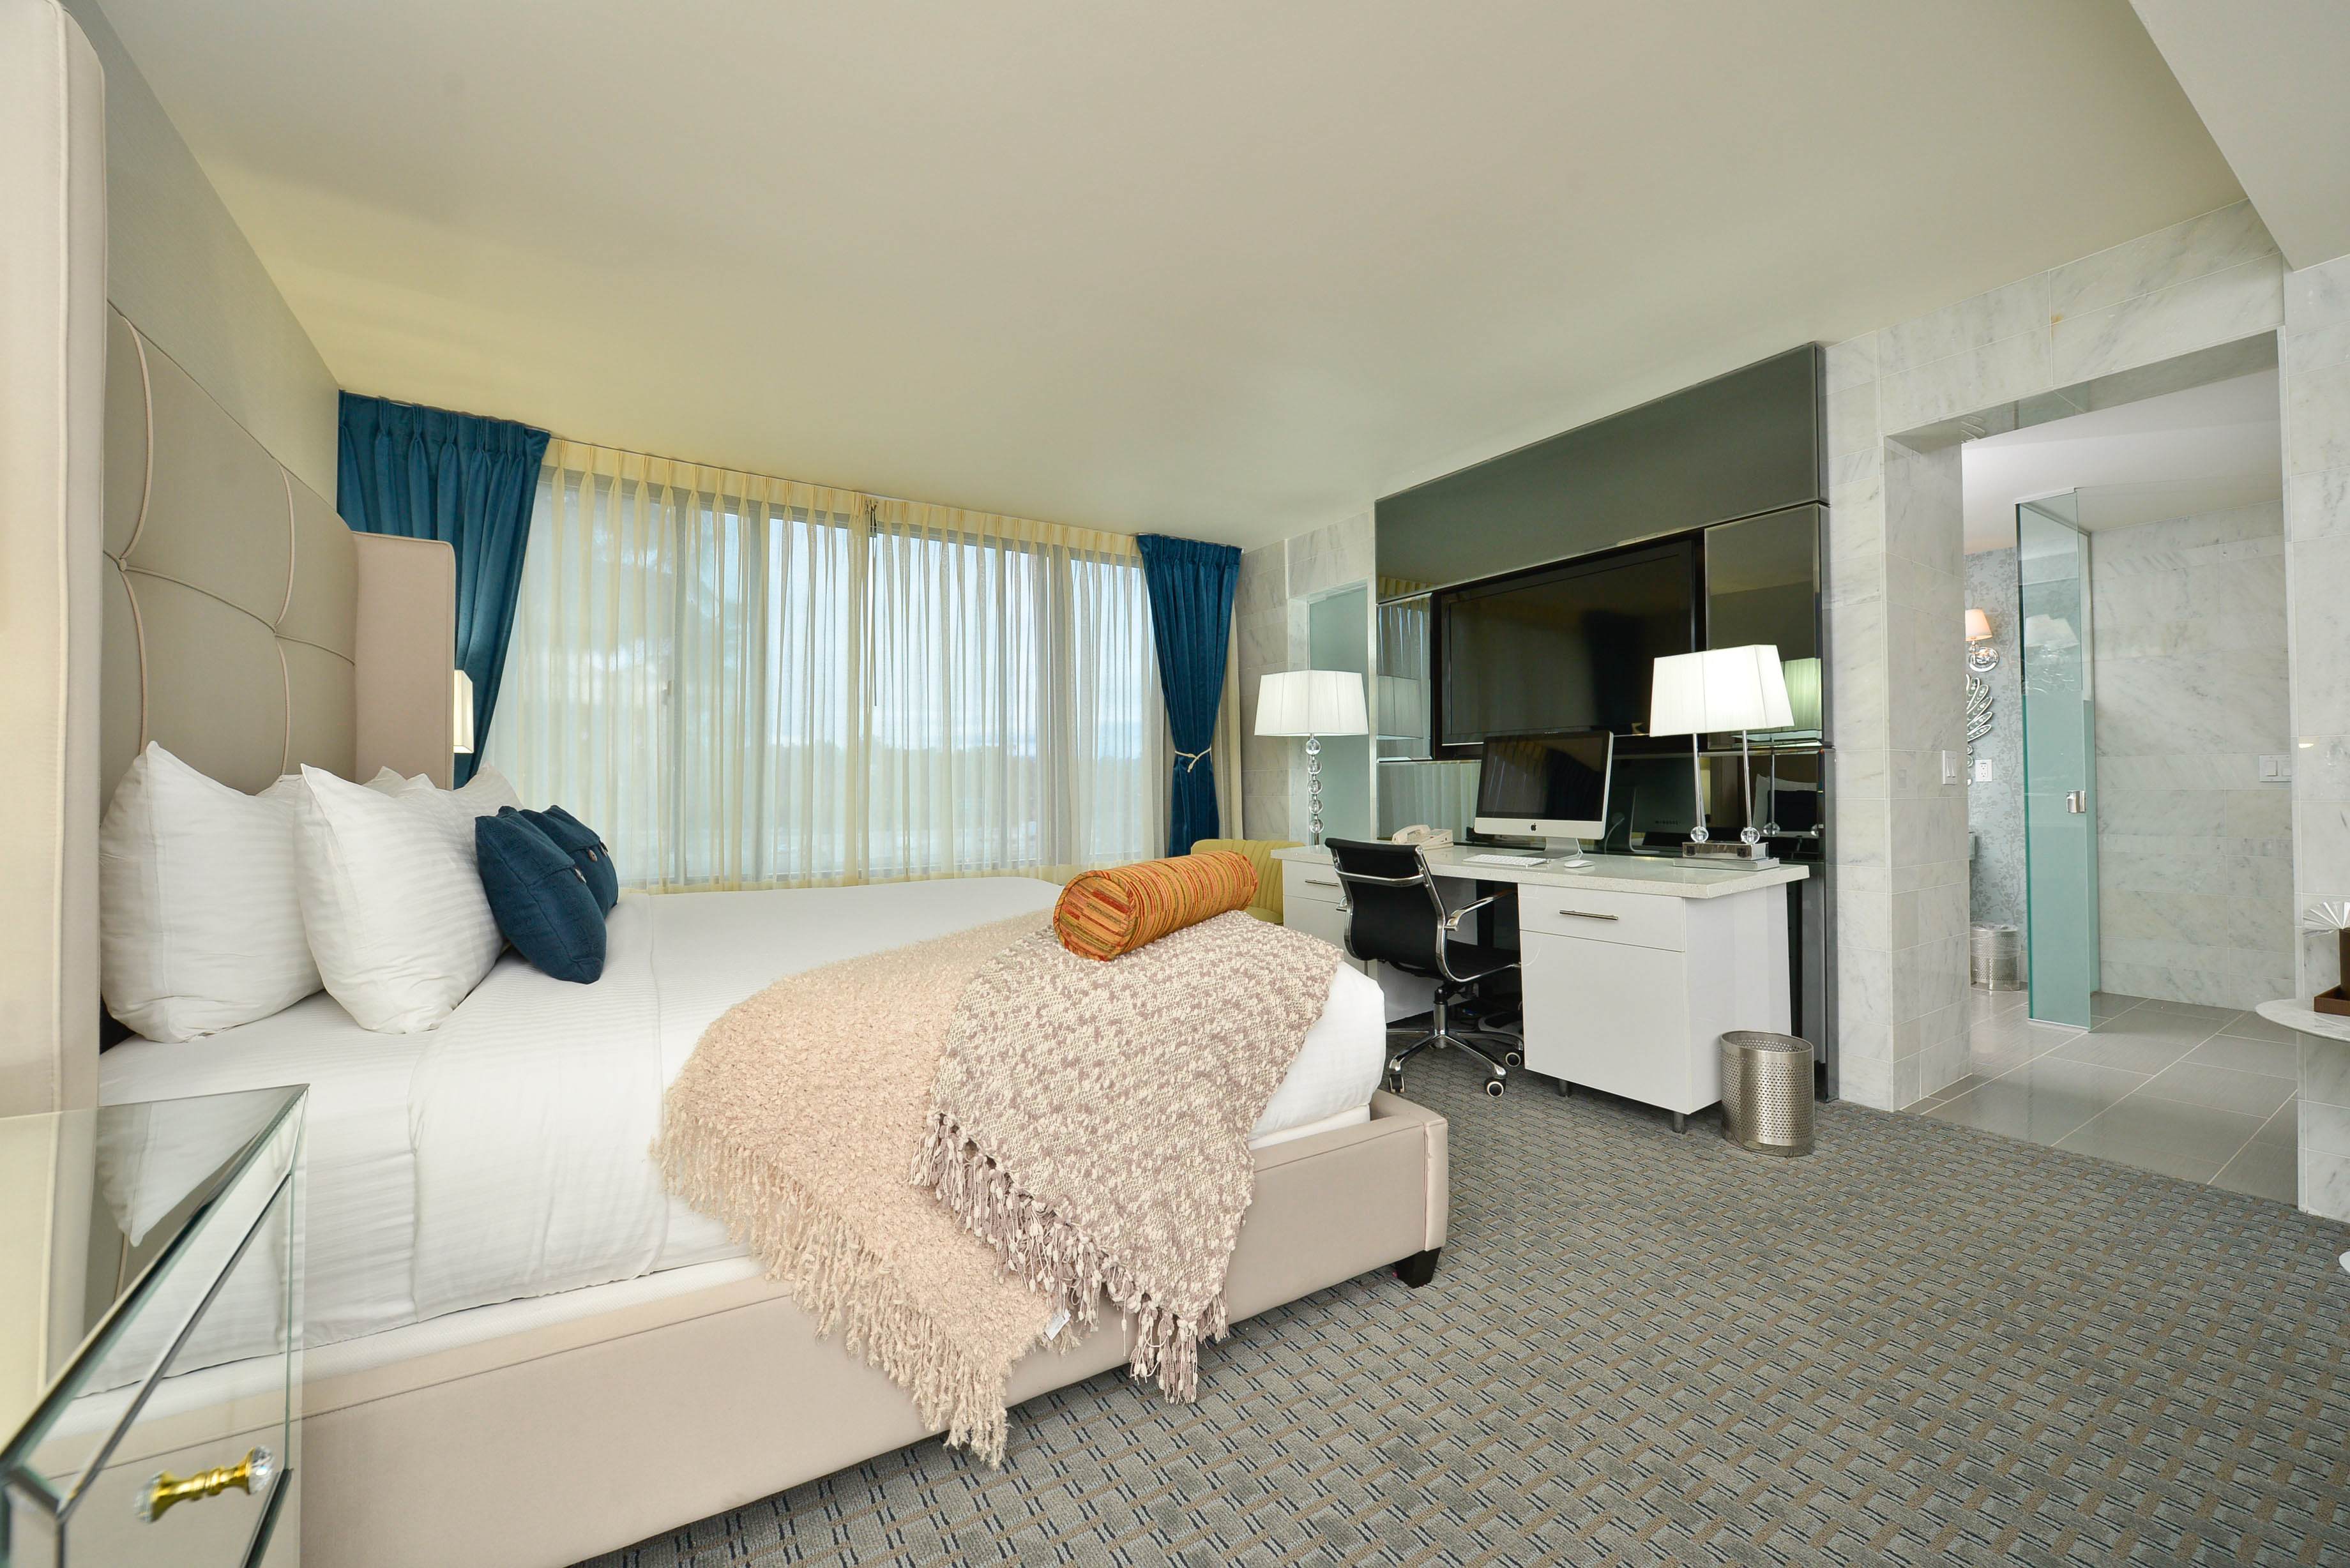 spacious guestroom with white and cream bedding large windows